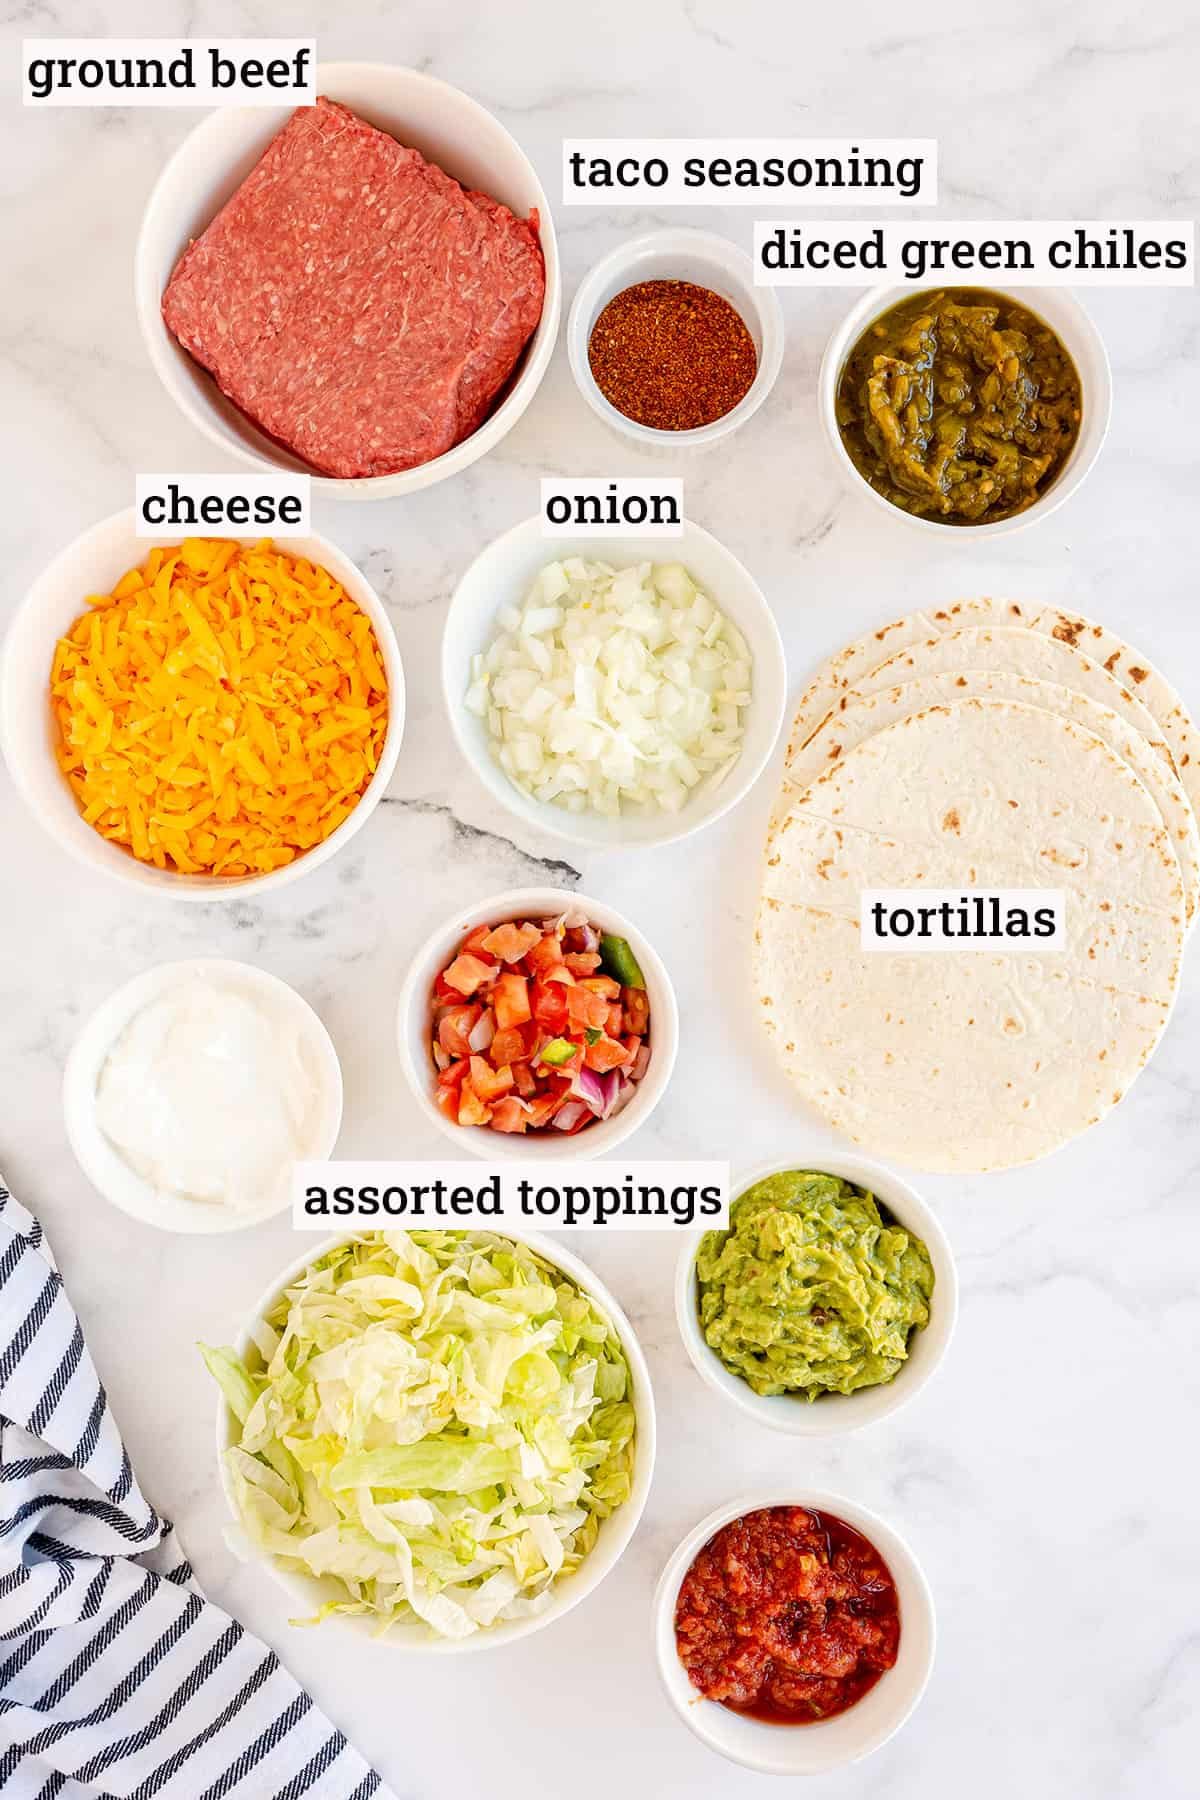 The ingredients needed for Air Fryer Beef Taquitos with text overlay.